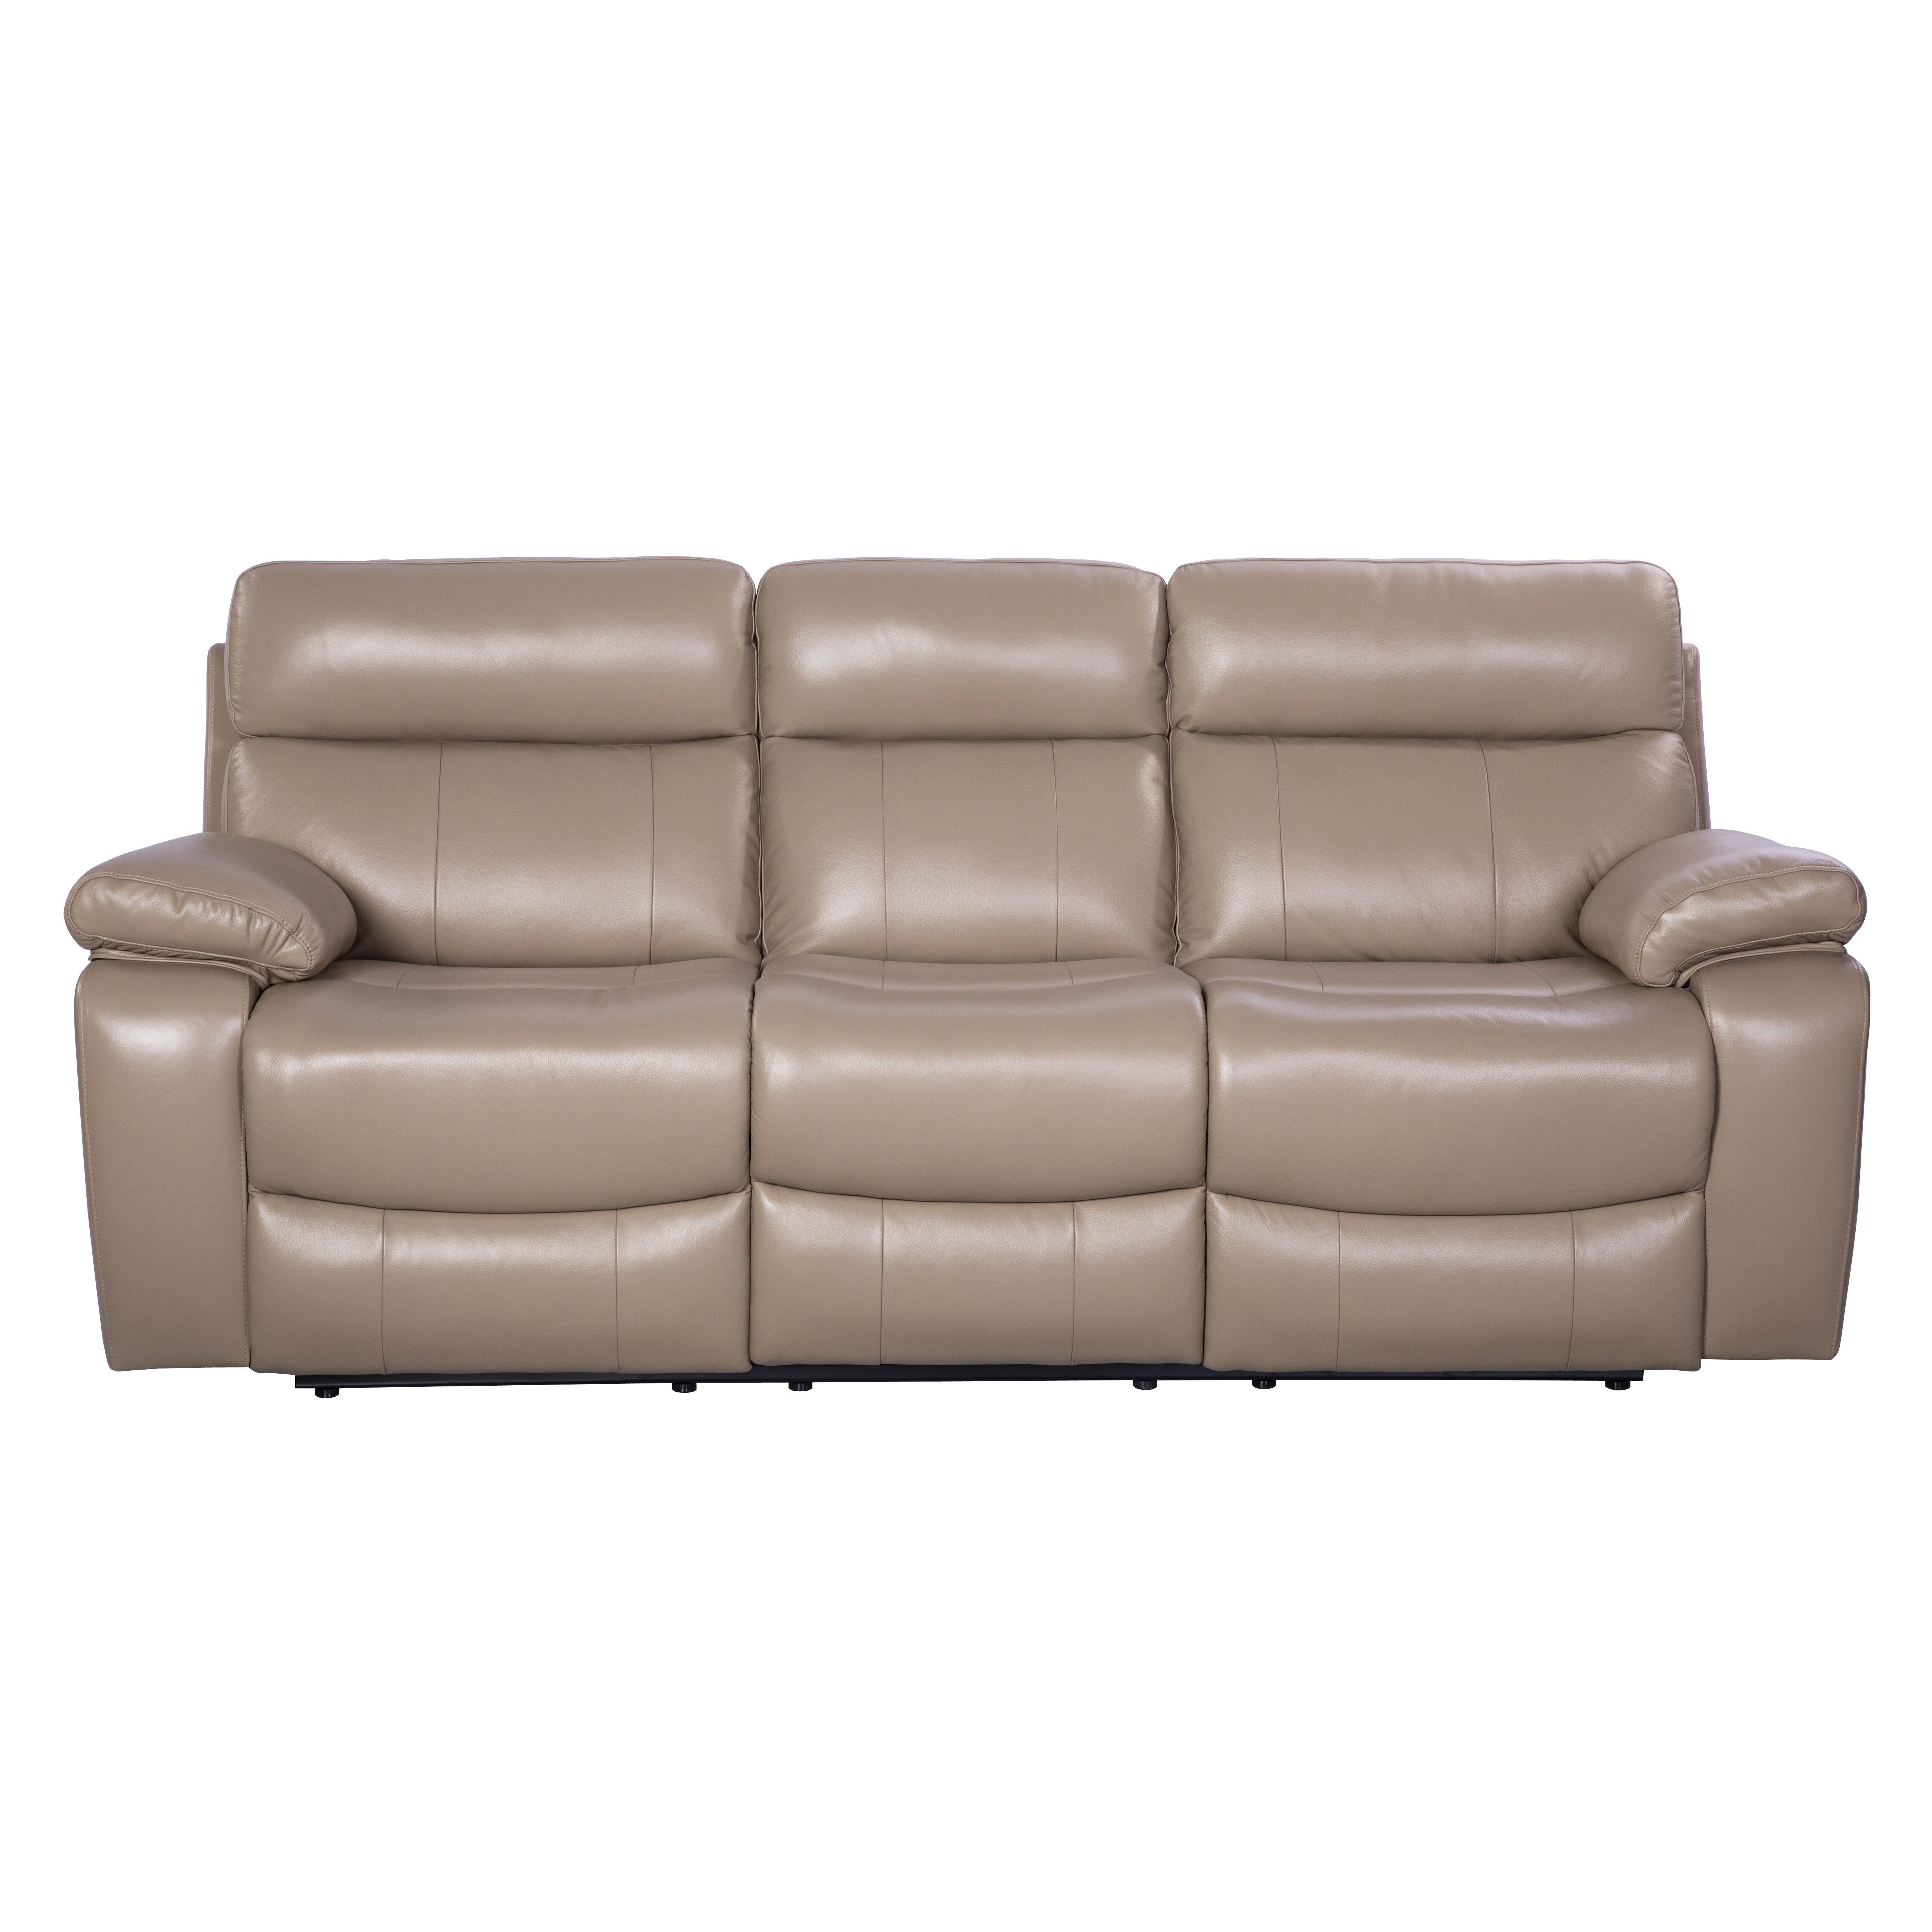 Mellor Leather Reclining Sofa